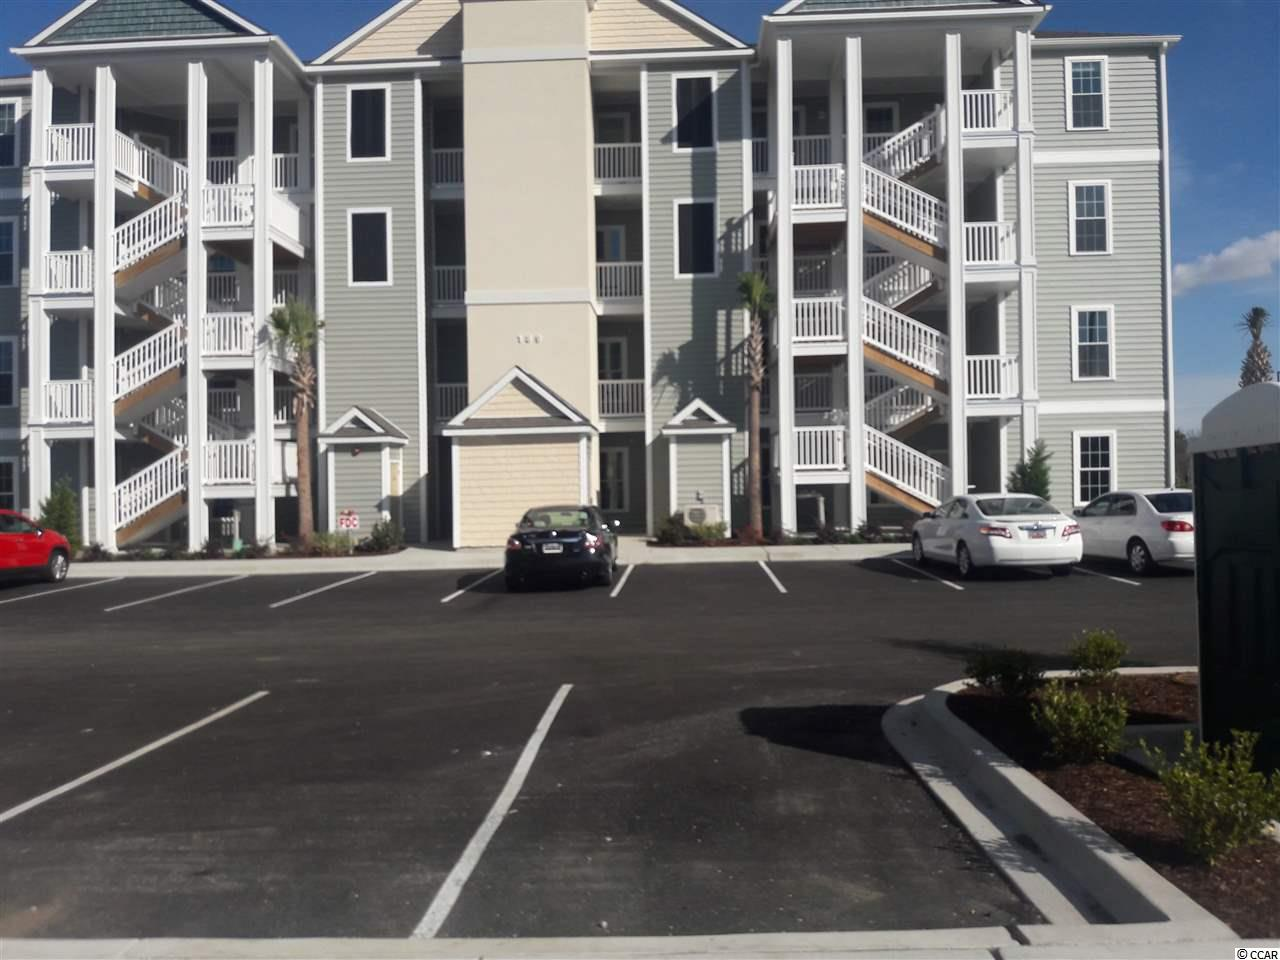 Located in one of the most successful condo developments in the Myrtle Beach area, this fourth floor end unit is a 3 bedroom 2 bathroom beautiful condo in the very popular Queens Harbour! Building has an over-sized ELEVATOR to all floors, outside storage, split bedroom floor plans with entry to the Master Suite from the Family Room, 9' smooth ceilings and a screen porch. The location is superb with shopping, dining and recreation steps away. The amenity package includes a resort style swimming pool with club house and conveniently located picnic areas with barbecues.